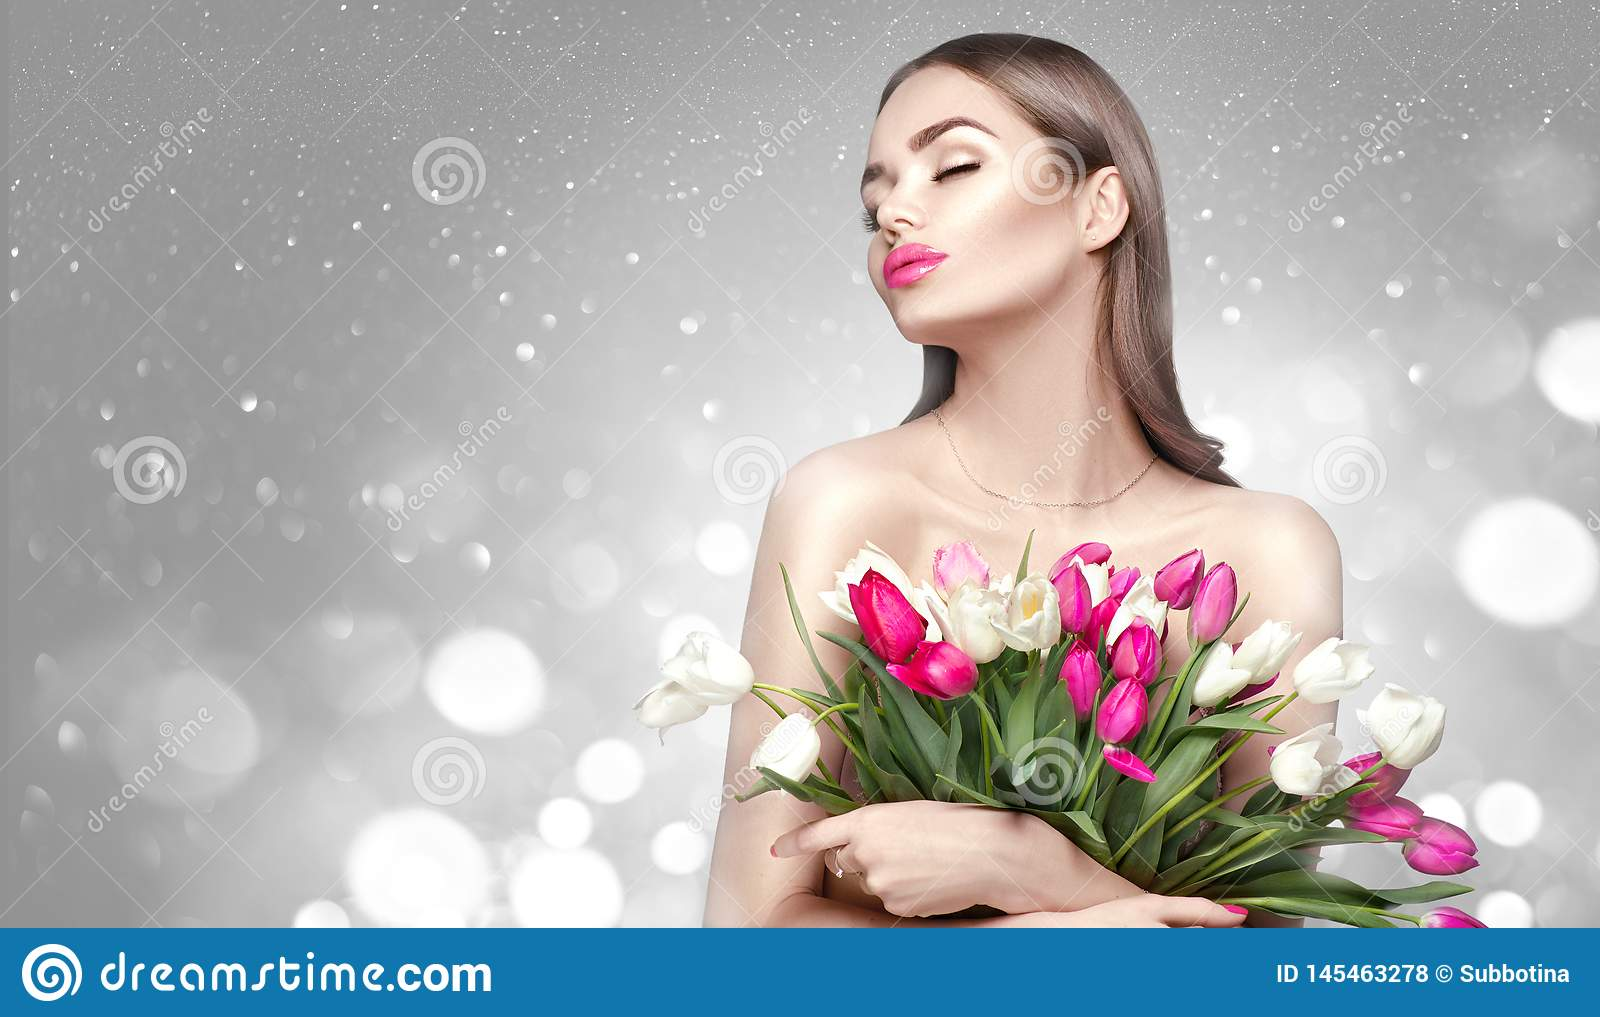 Beauty girl holding spring tulips. Beautiful woman receiving a bouquet of colorful tulips